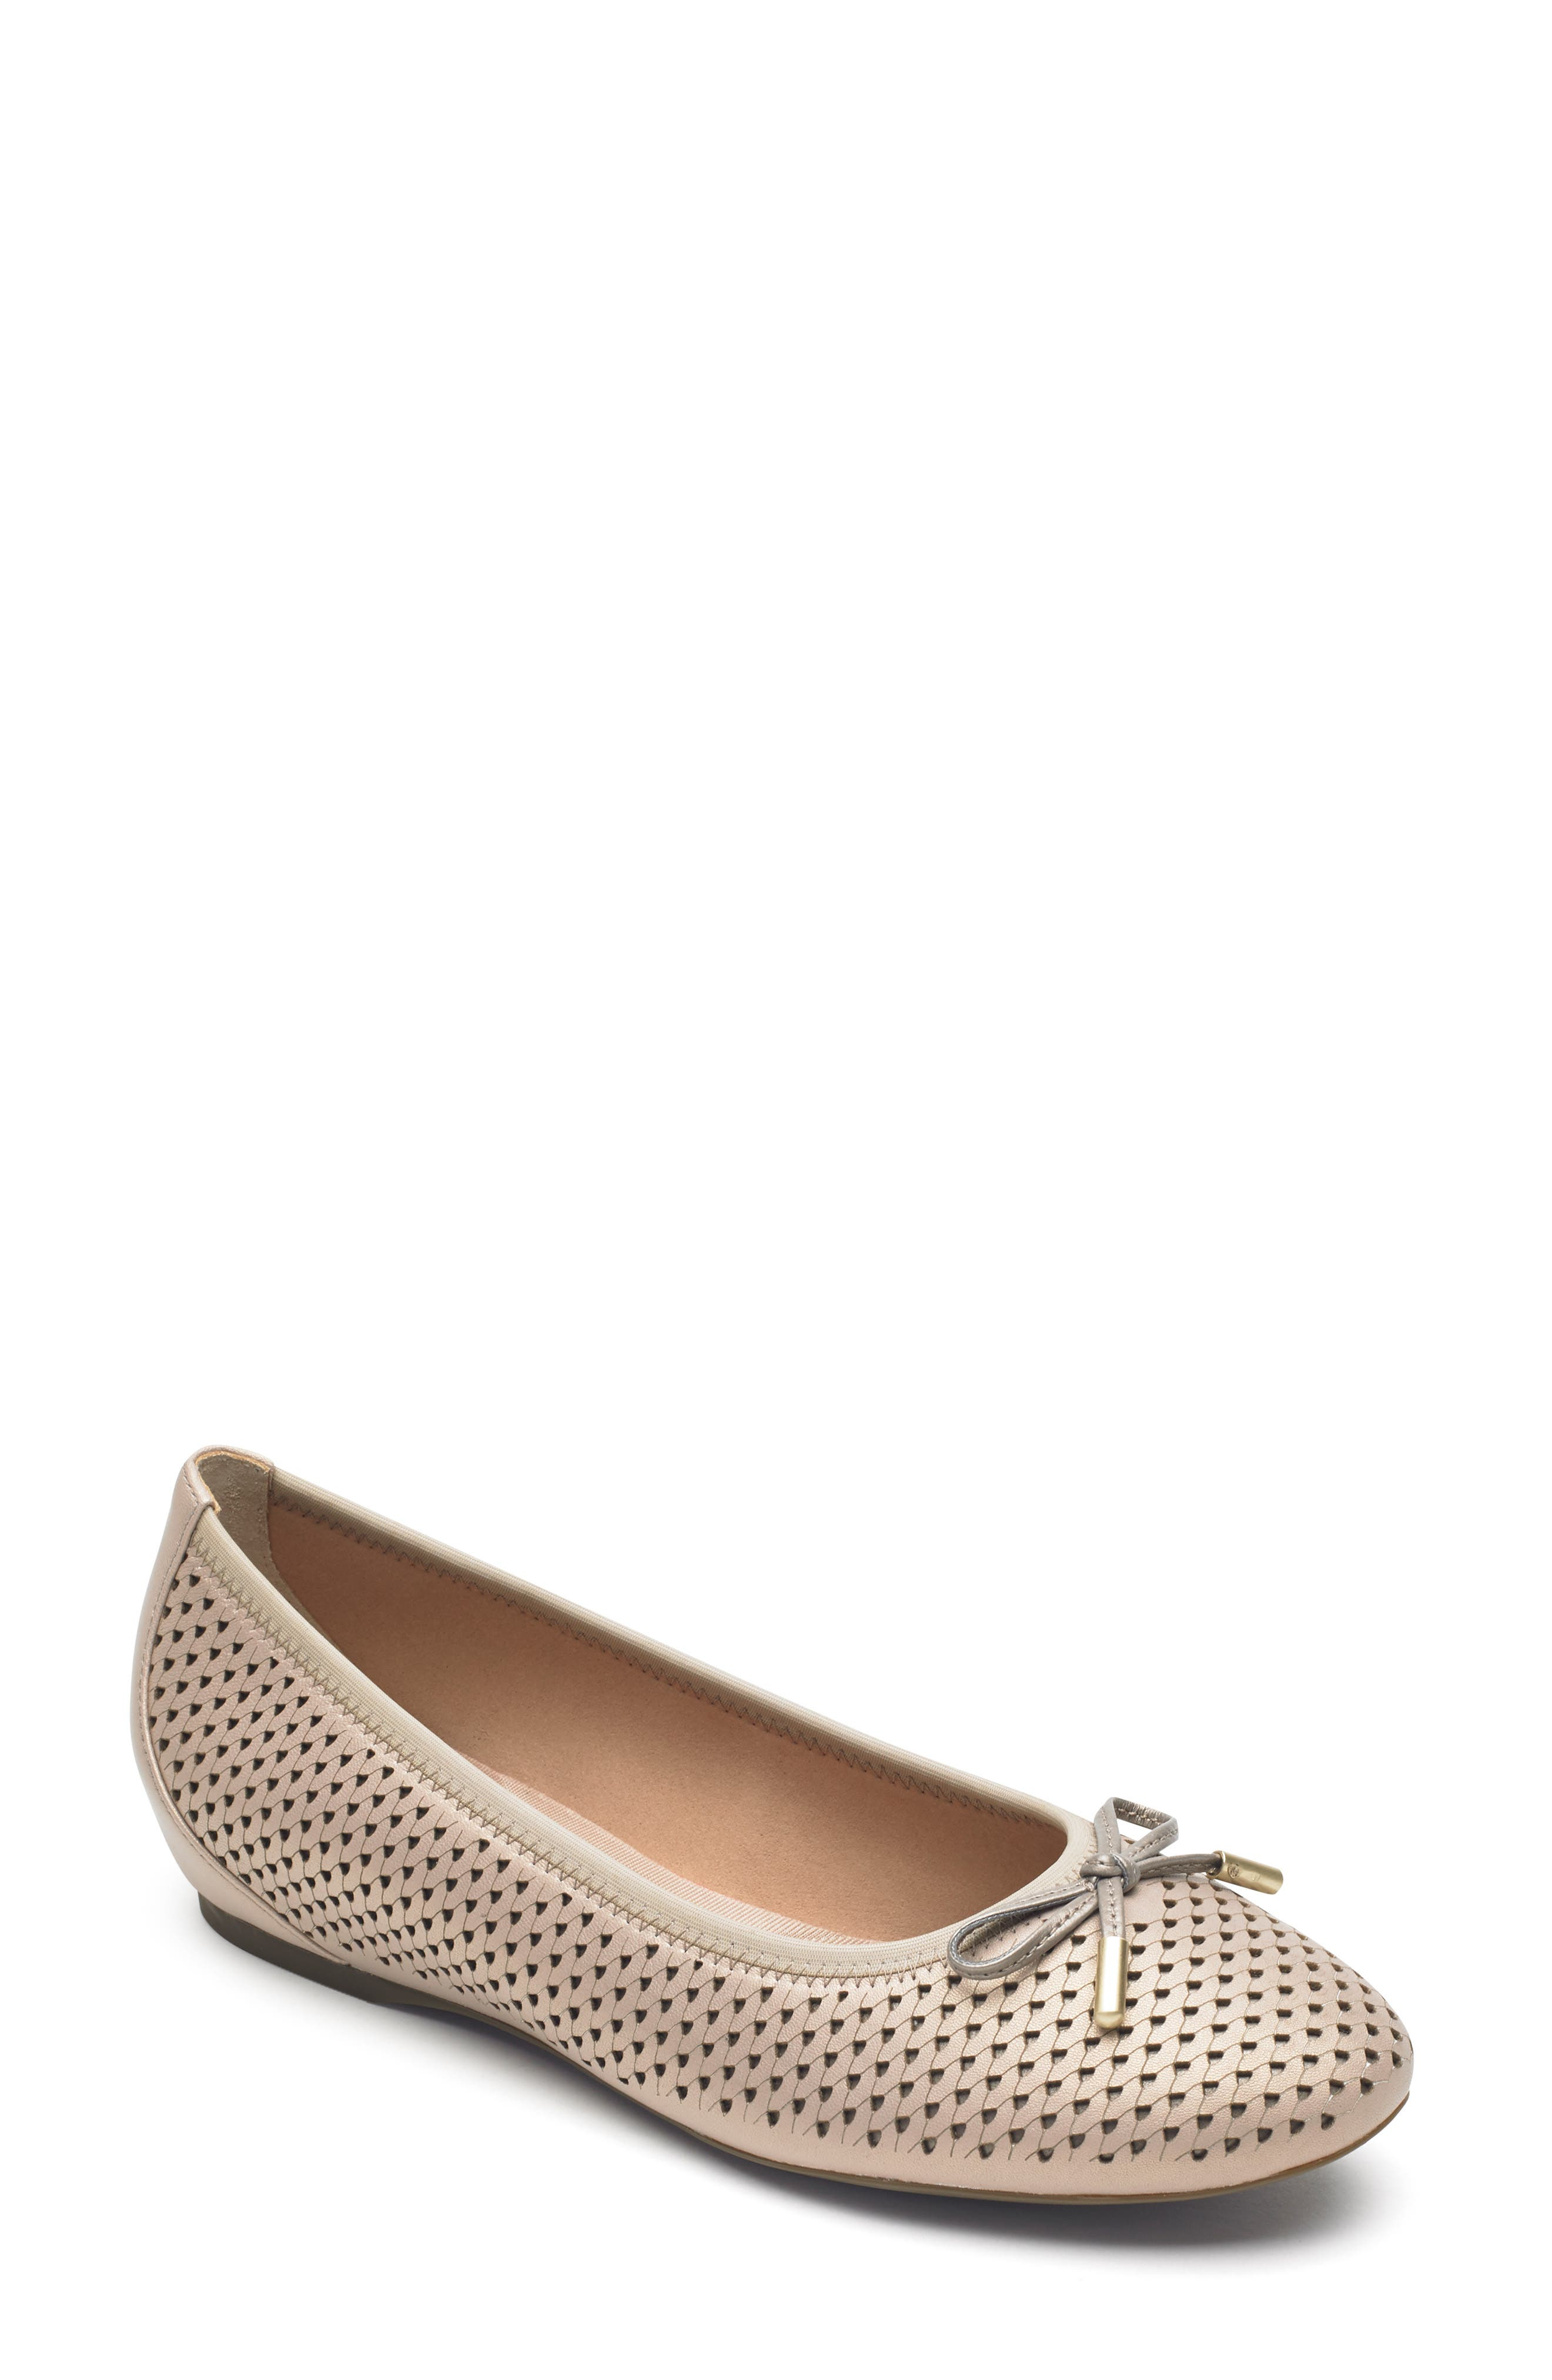 Rockport Total Motion Hidden Wedge Perforated Flat- Beige